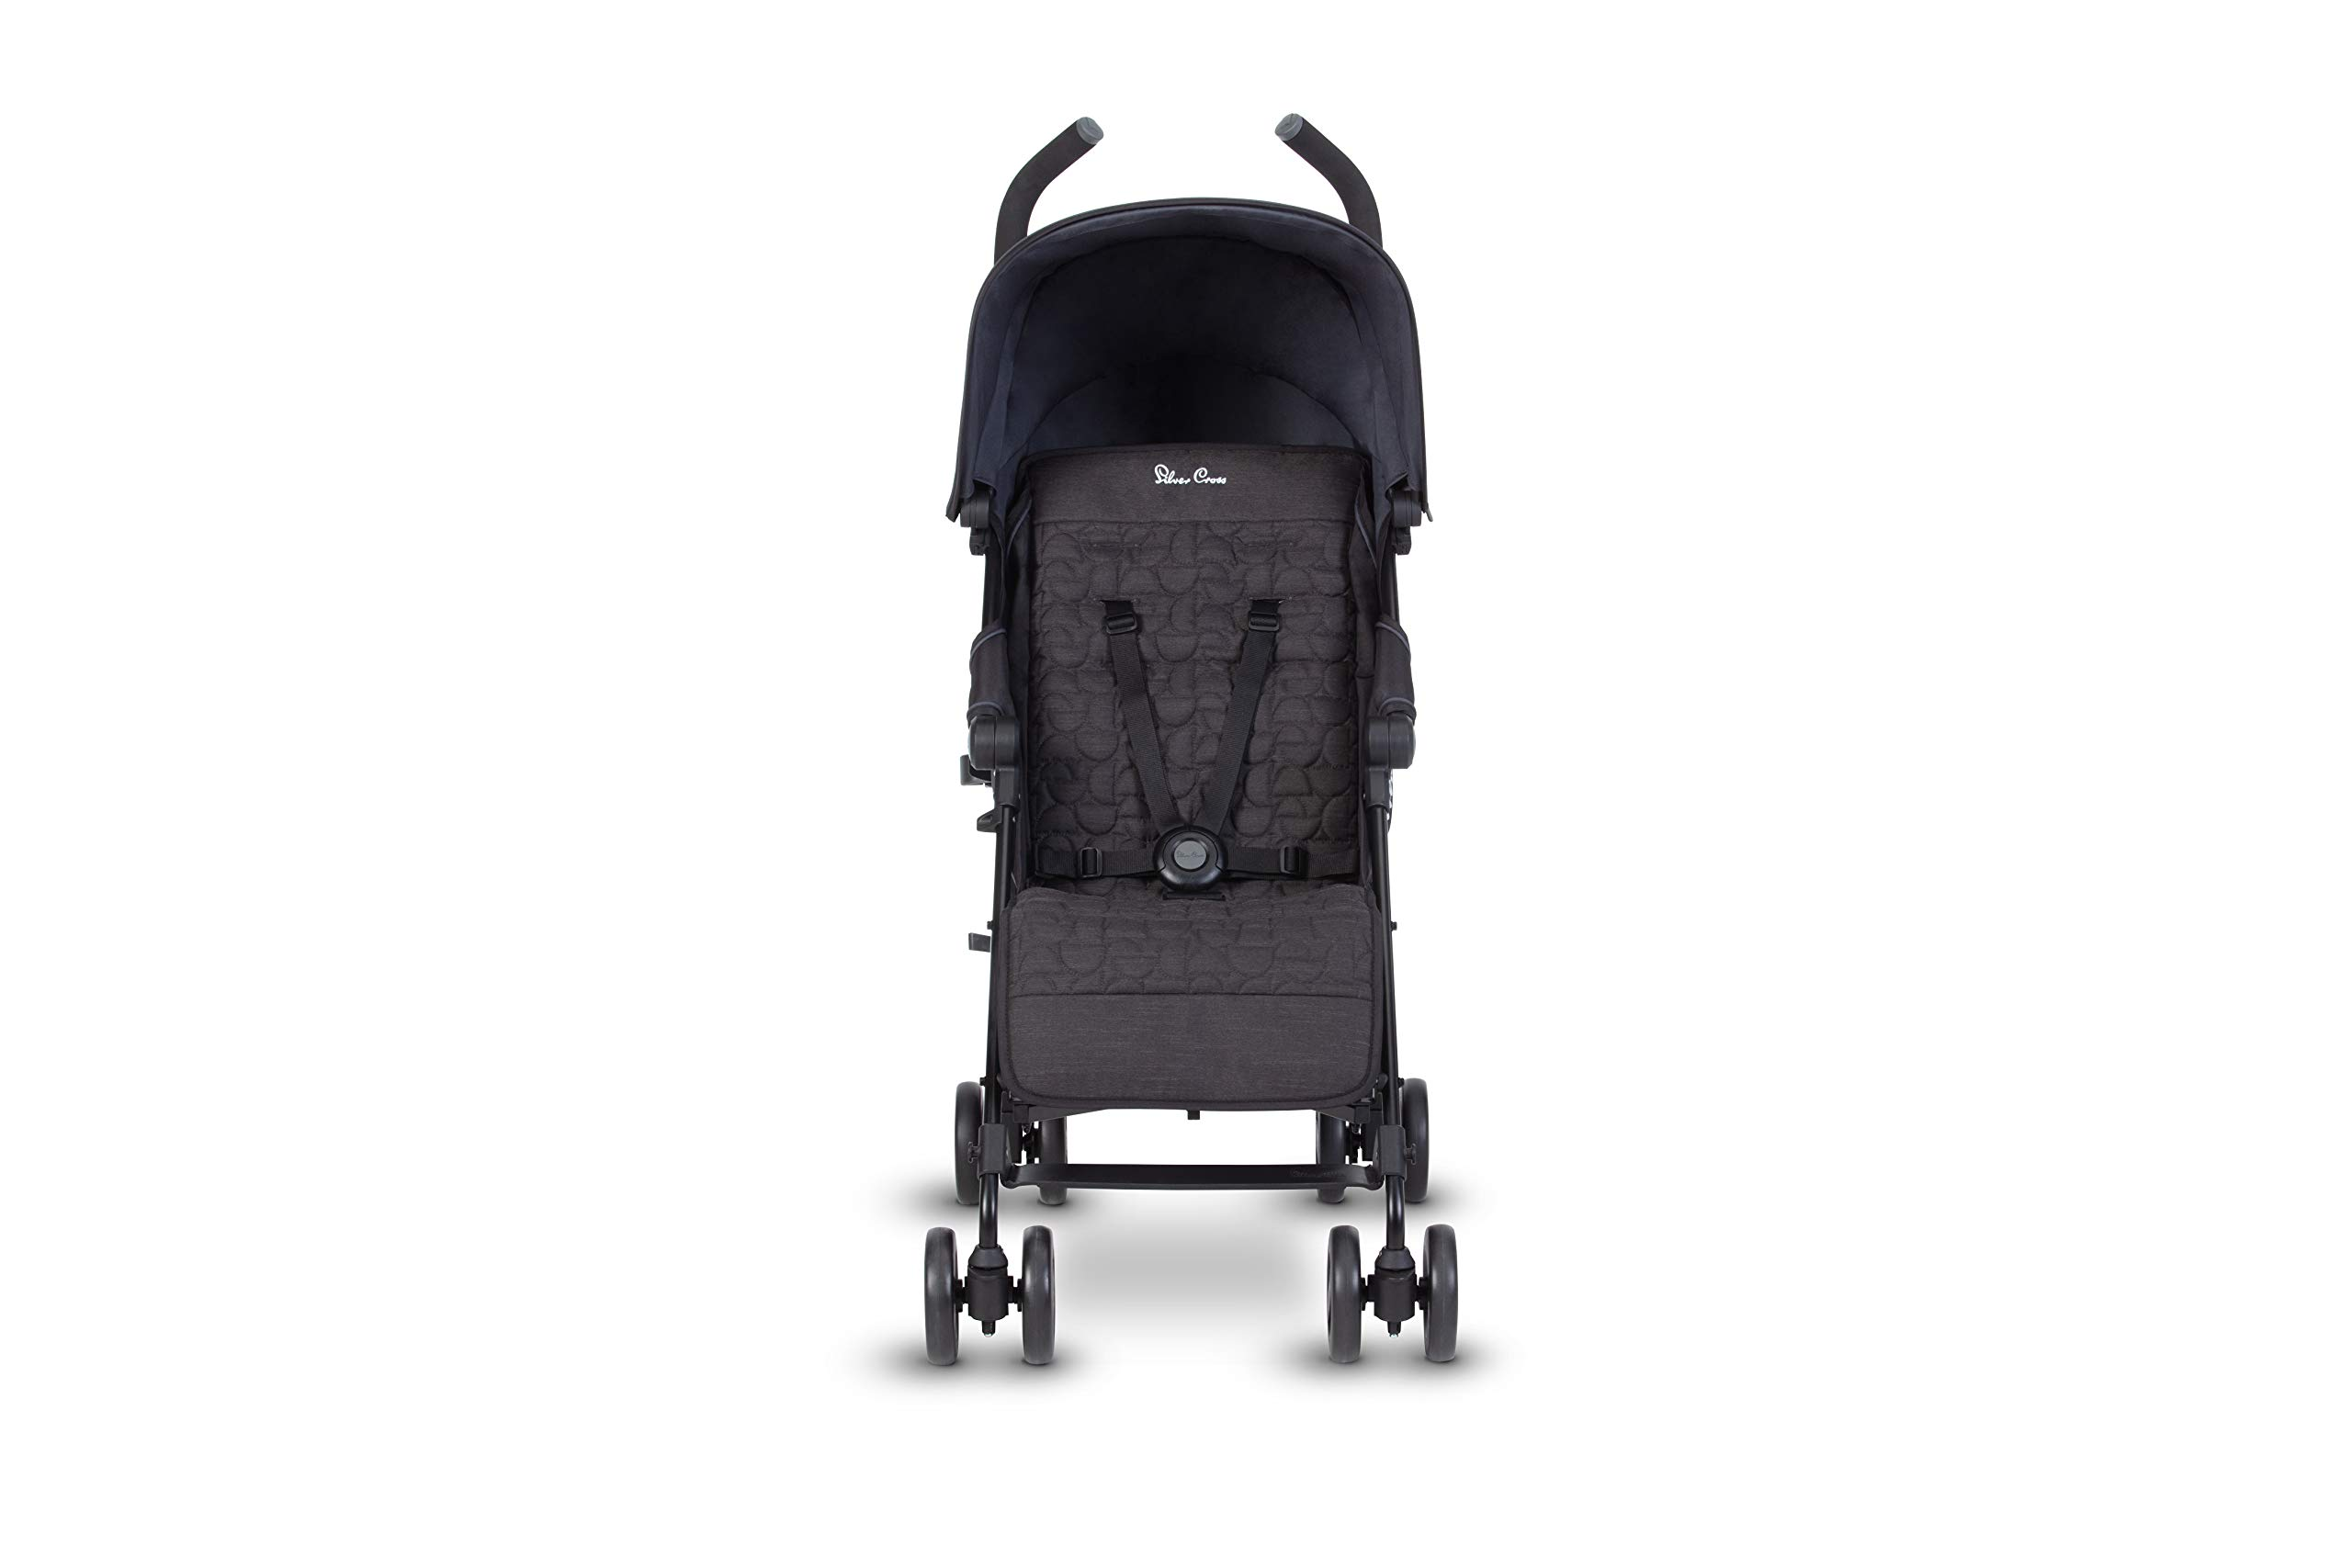 Silver Cross Zest Charcoal Black Silver Cross Ultra lightweight zest pushchair, weighing in at only 5.8kg, is suitable from birth up to 25kg It has a convenient one-hand fold, while the compact design makes it easy to store The fully lie-flat recline is best in its class 4